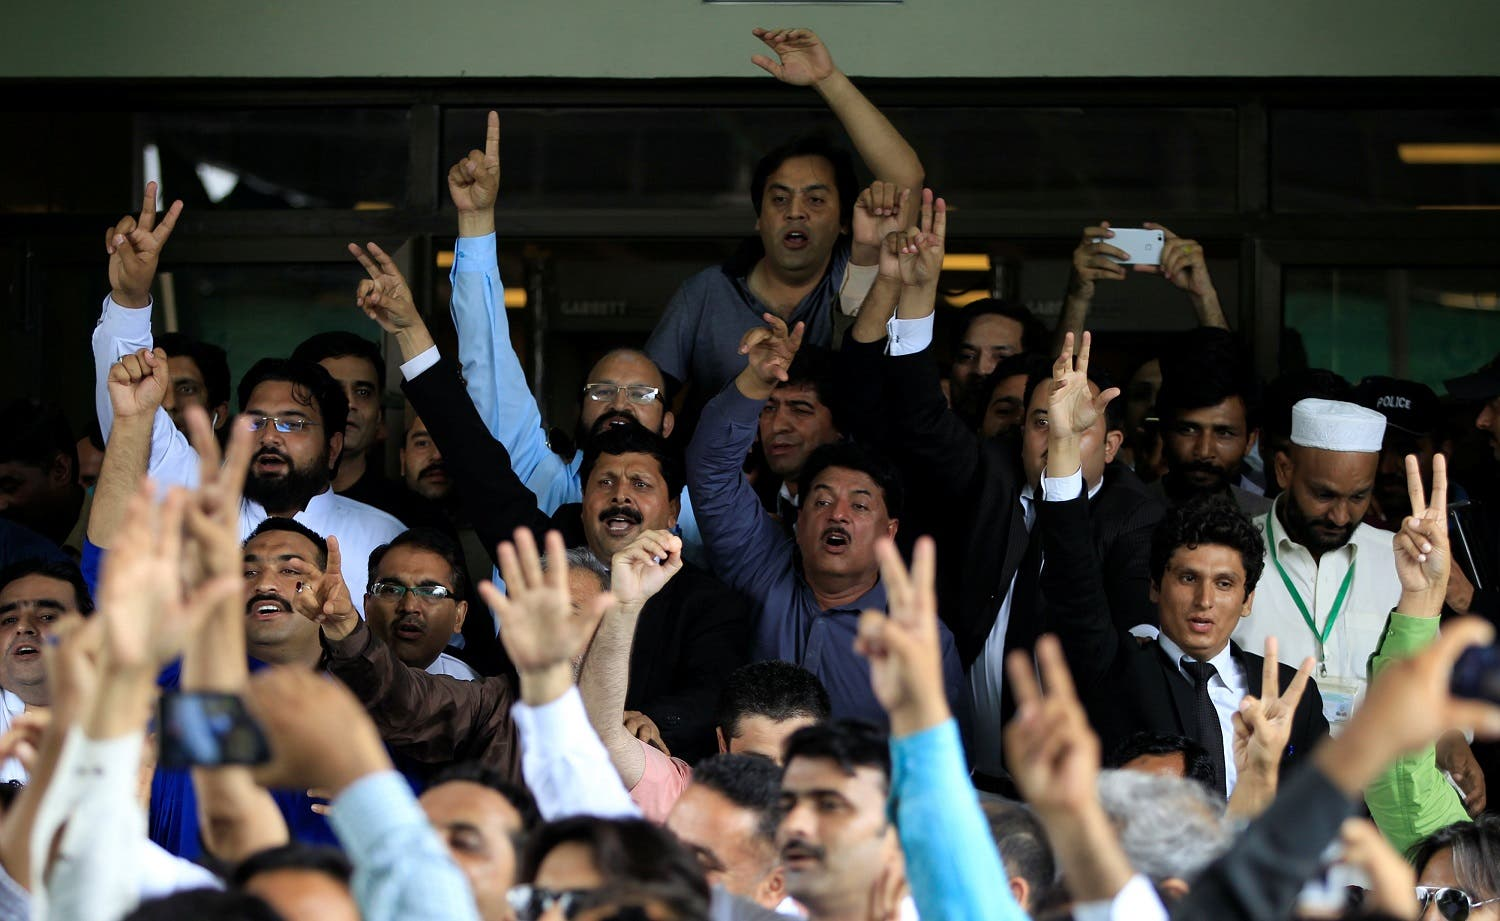 Opponents of Prime Minister Nawaz Sharif shout slogans as they exit the Supreme Court in Islamabad, Pakistan July 28, 2017. (Reuters)